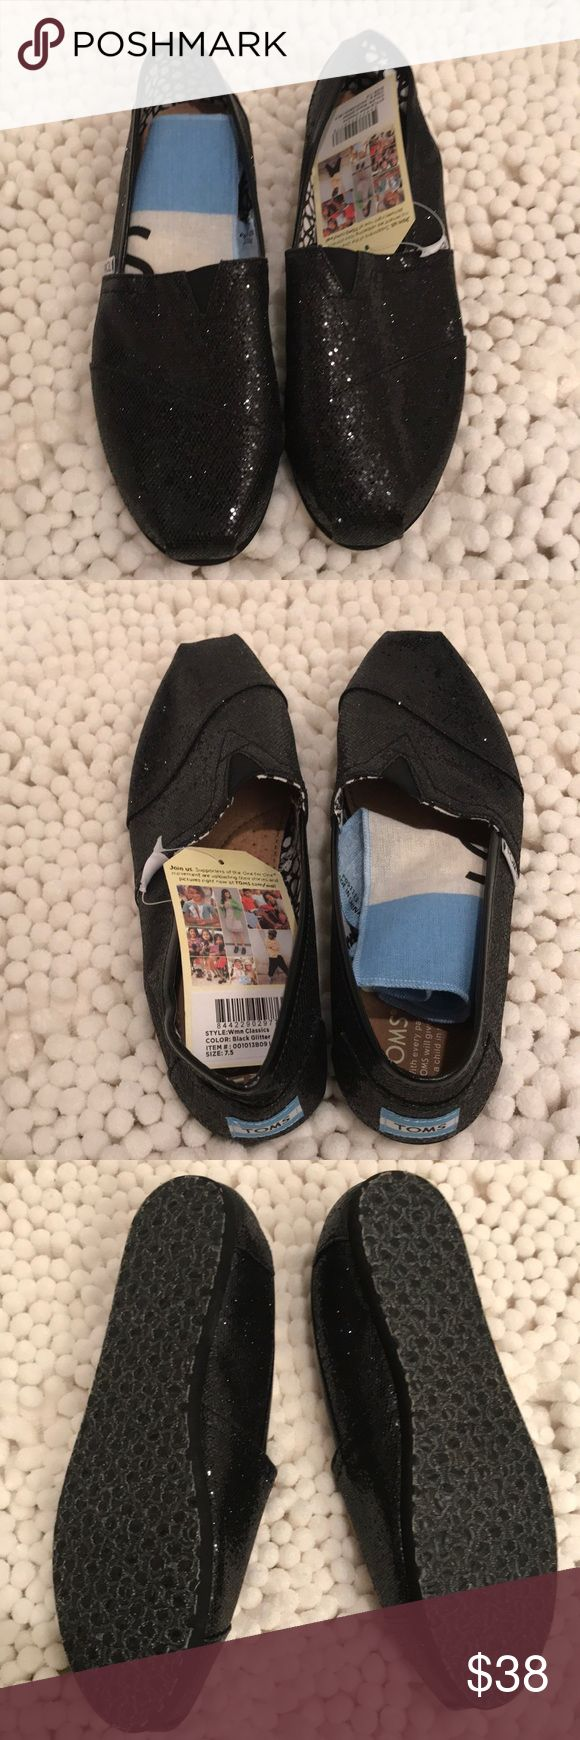 🌟Toms Classic Black Glitter Flats glitter ✨✨✨ Toms Classic Glitter Black Flats, very cute design, easy to go with any outfits, super comfy to wear, perfect for weekends/ travel, brand new in perfect condition 🎀🎀🎀                                                                                              👛👛👛No Trade, sorry 🛍🛍🛍                                           💰💰💰Bundle and Save💸💸💸 Toms Shoes Flats & Loafers